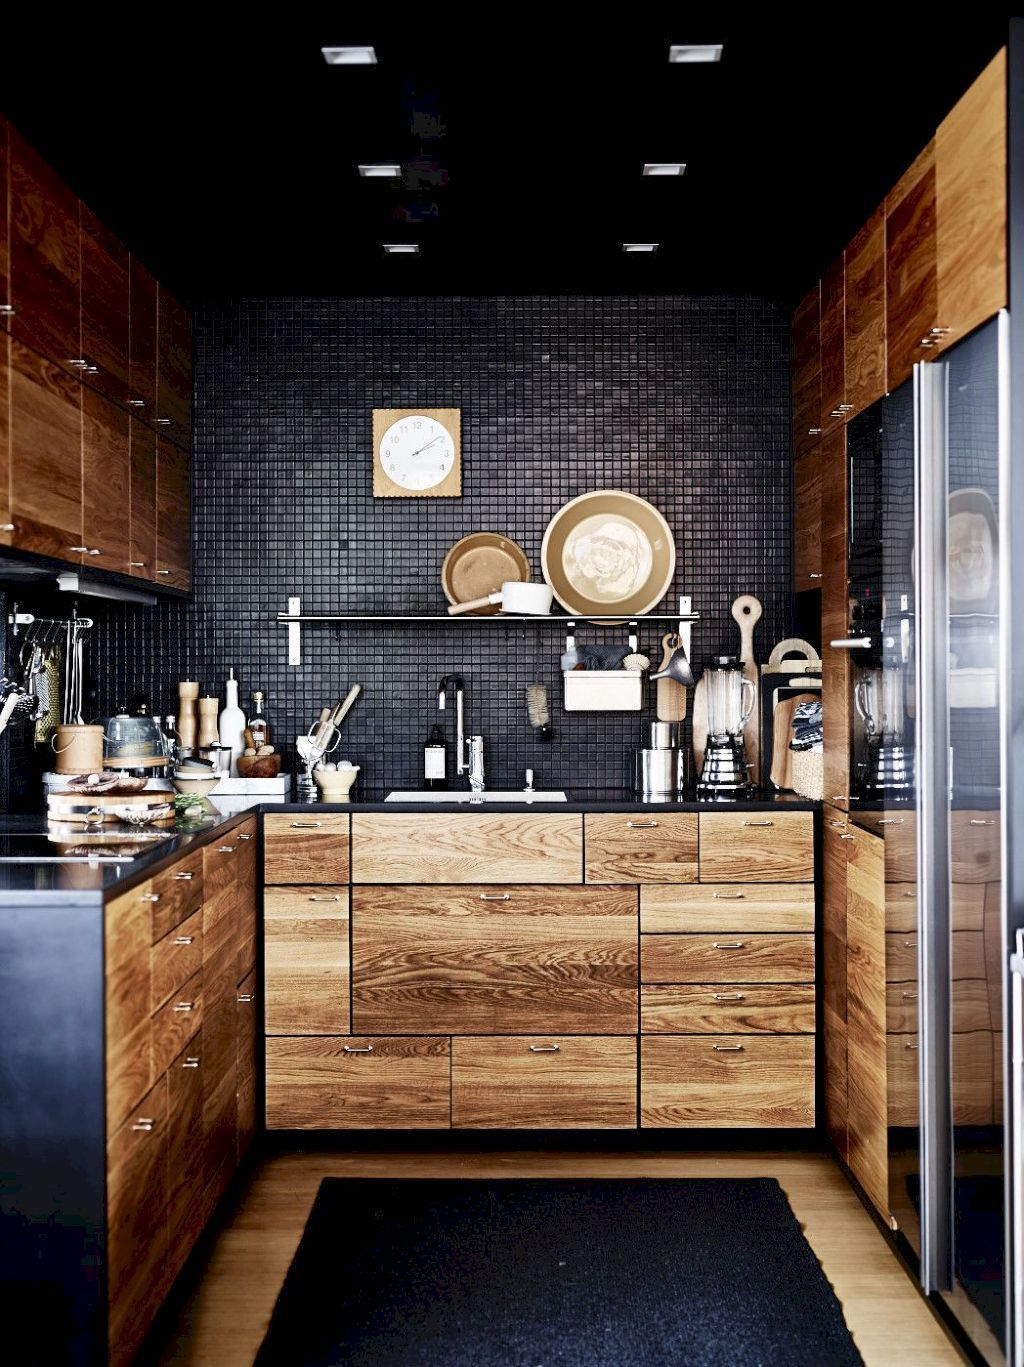 kitchen with charcoal black backsplash